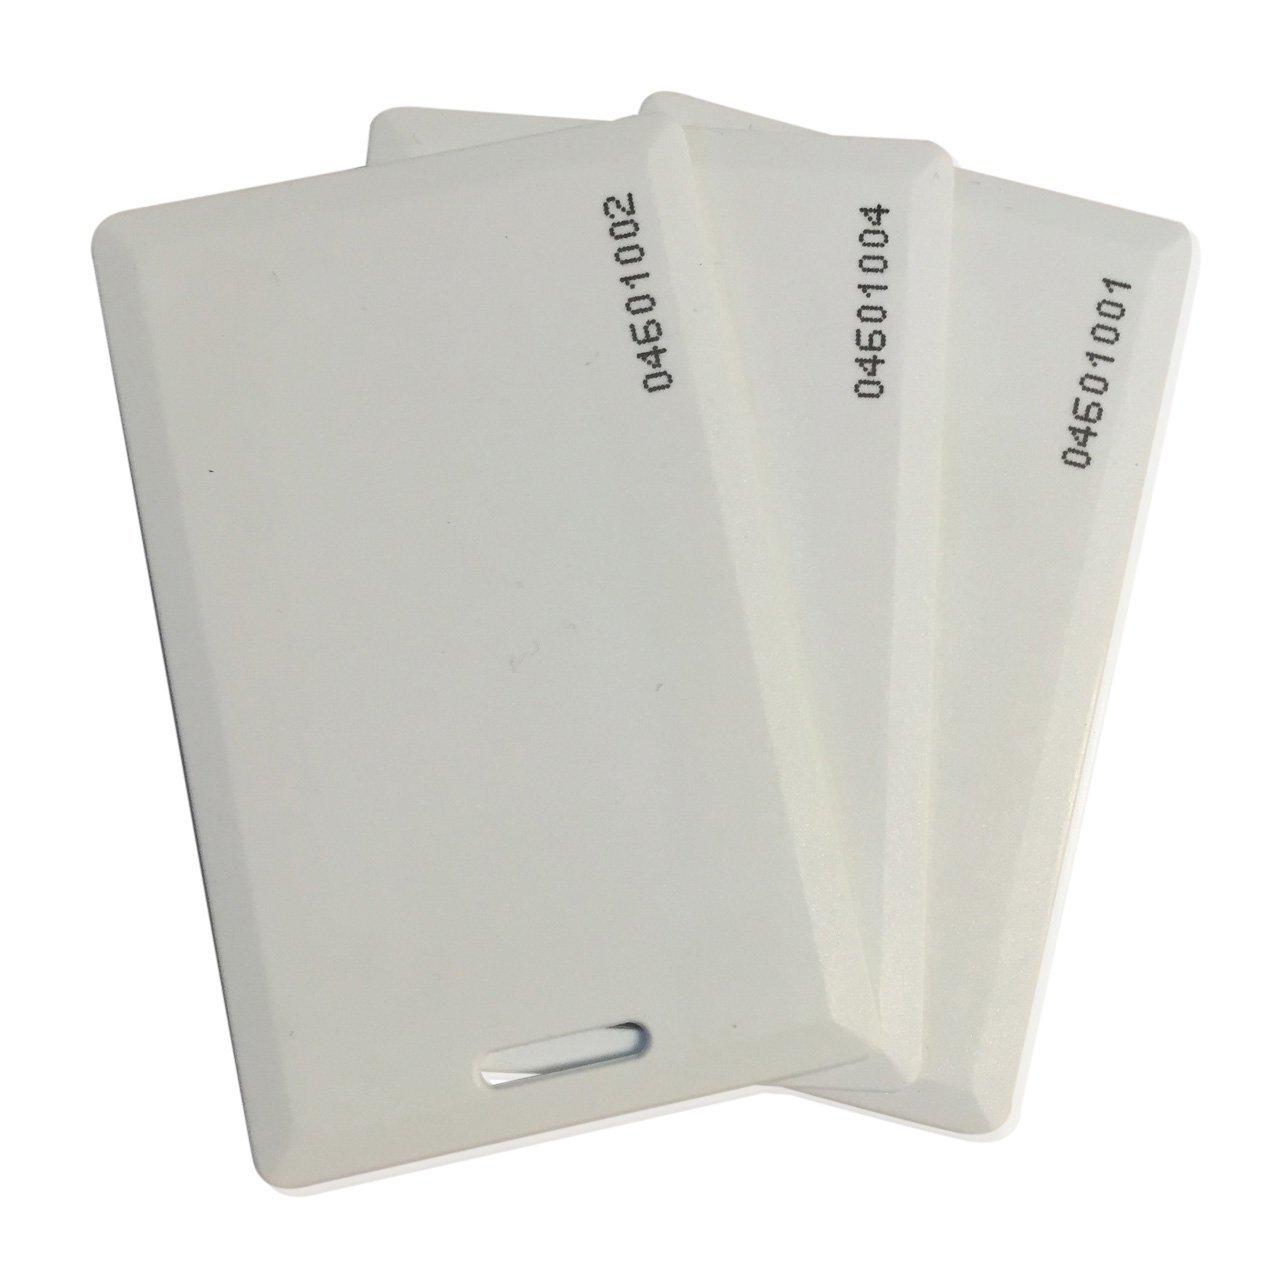 26 Bit Proximity Clamshell Weigand Prox Swipe Cards Compatable with ISOProx 1386 1326 H10301 Format Readers and Systems. Works with The vast Majority of Access Control Systems(100 pcs) by KINGONE